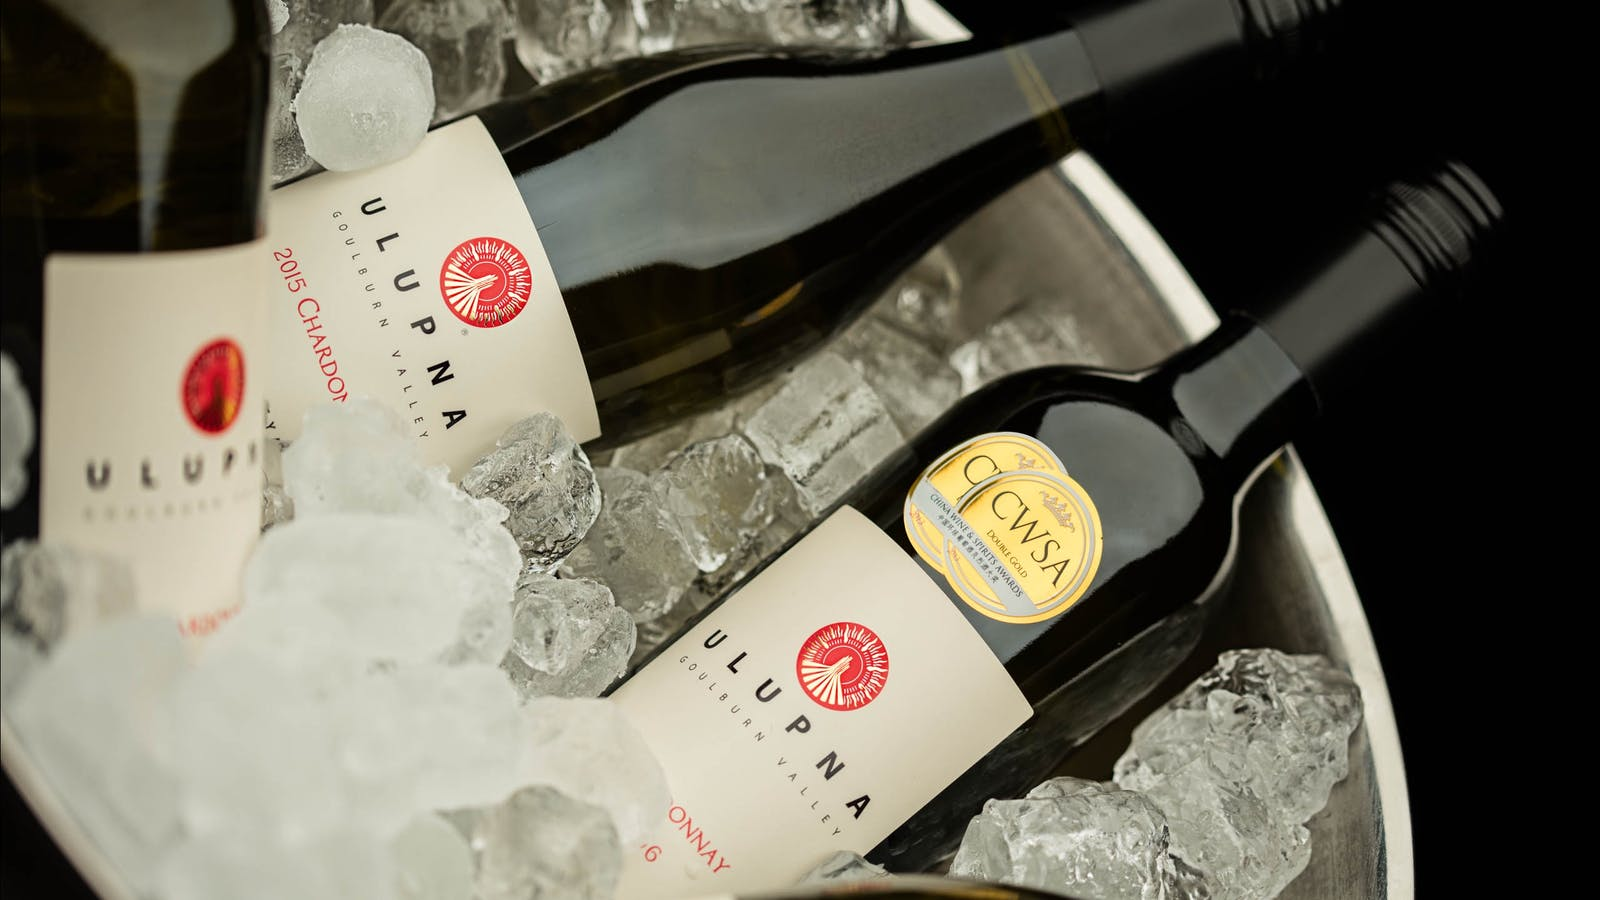 Ulupna Chardonnay on ice